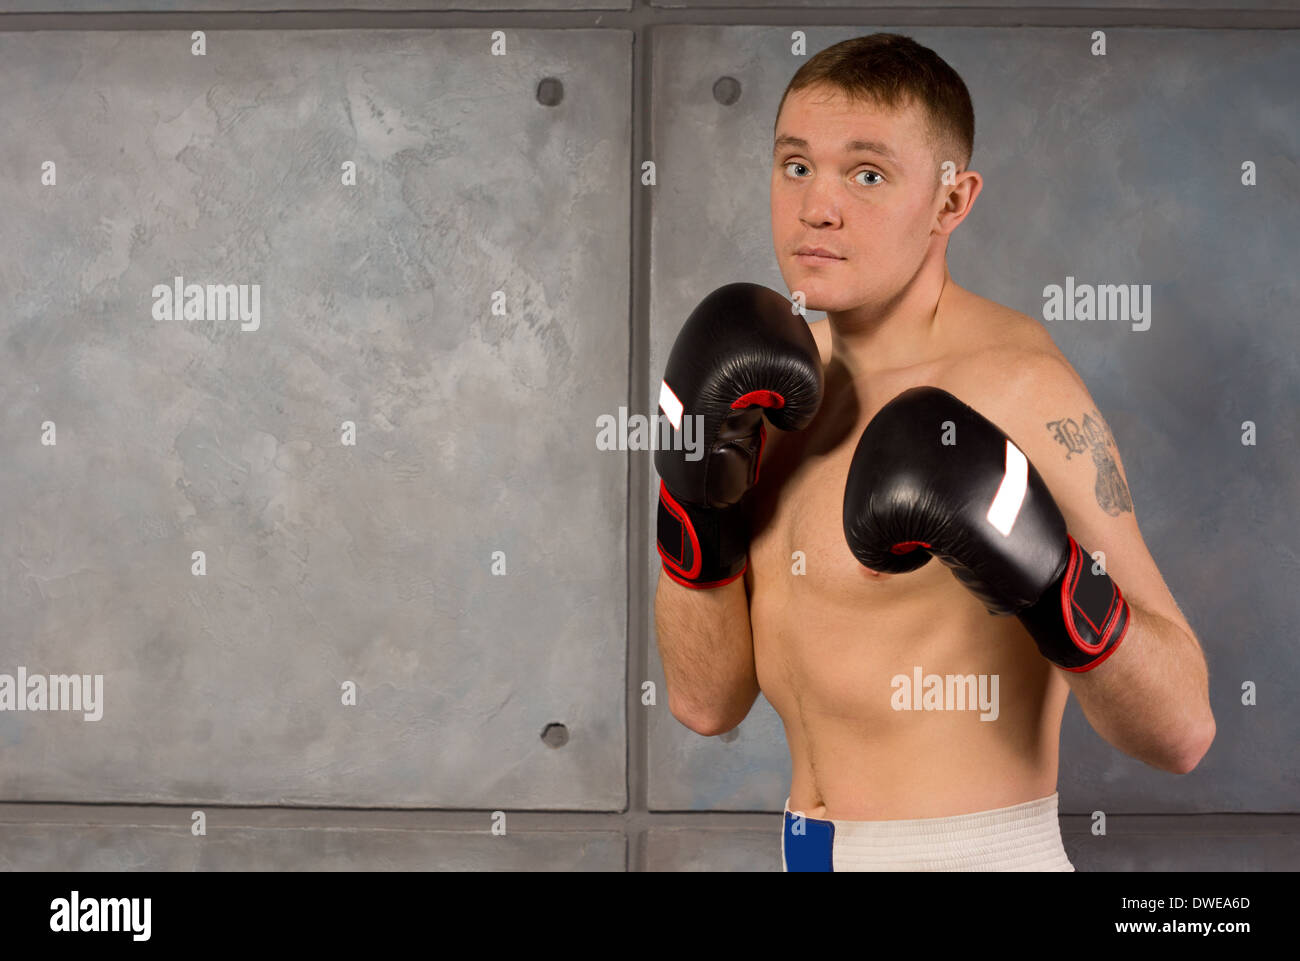 Fit muscular young boxer in training standing on the alert with his gloved fists raised, with copyspace - Stock Image